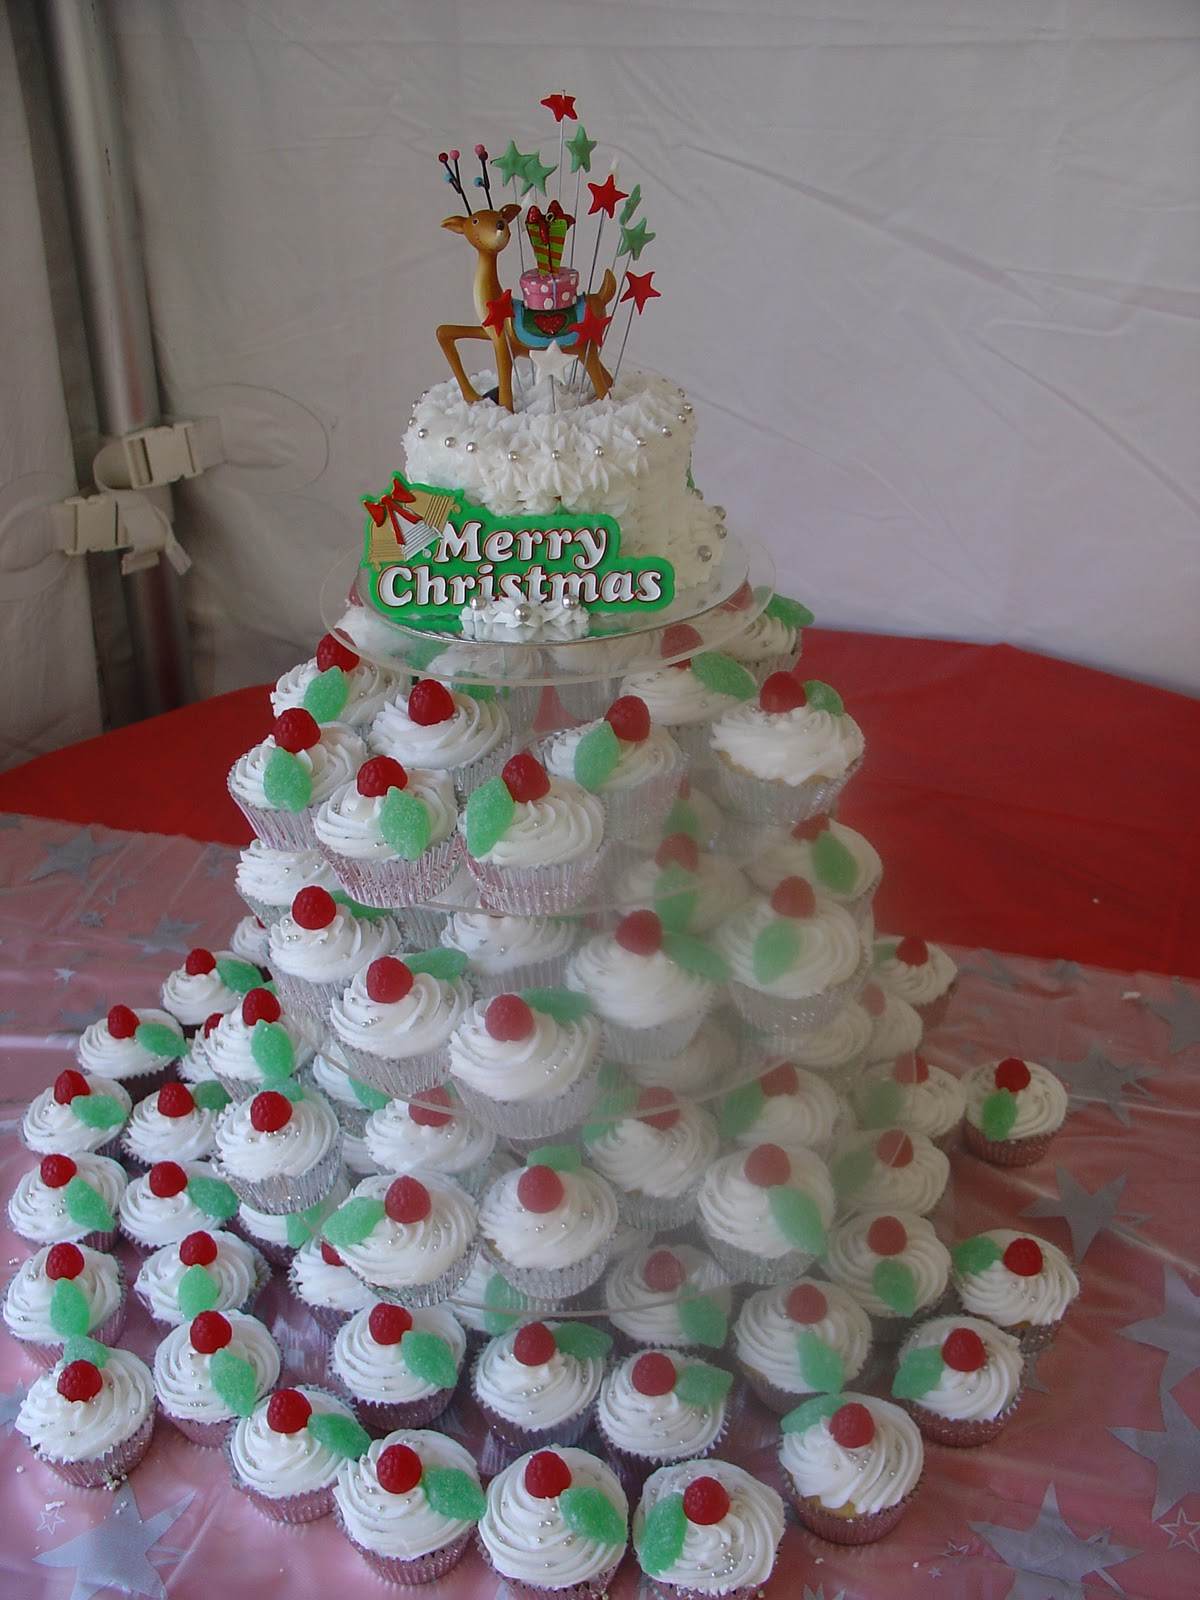 Free Download Christmas Cake Images : Festivals Pictures: christmas cake, 2012 christmas cake ...